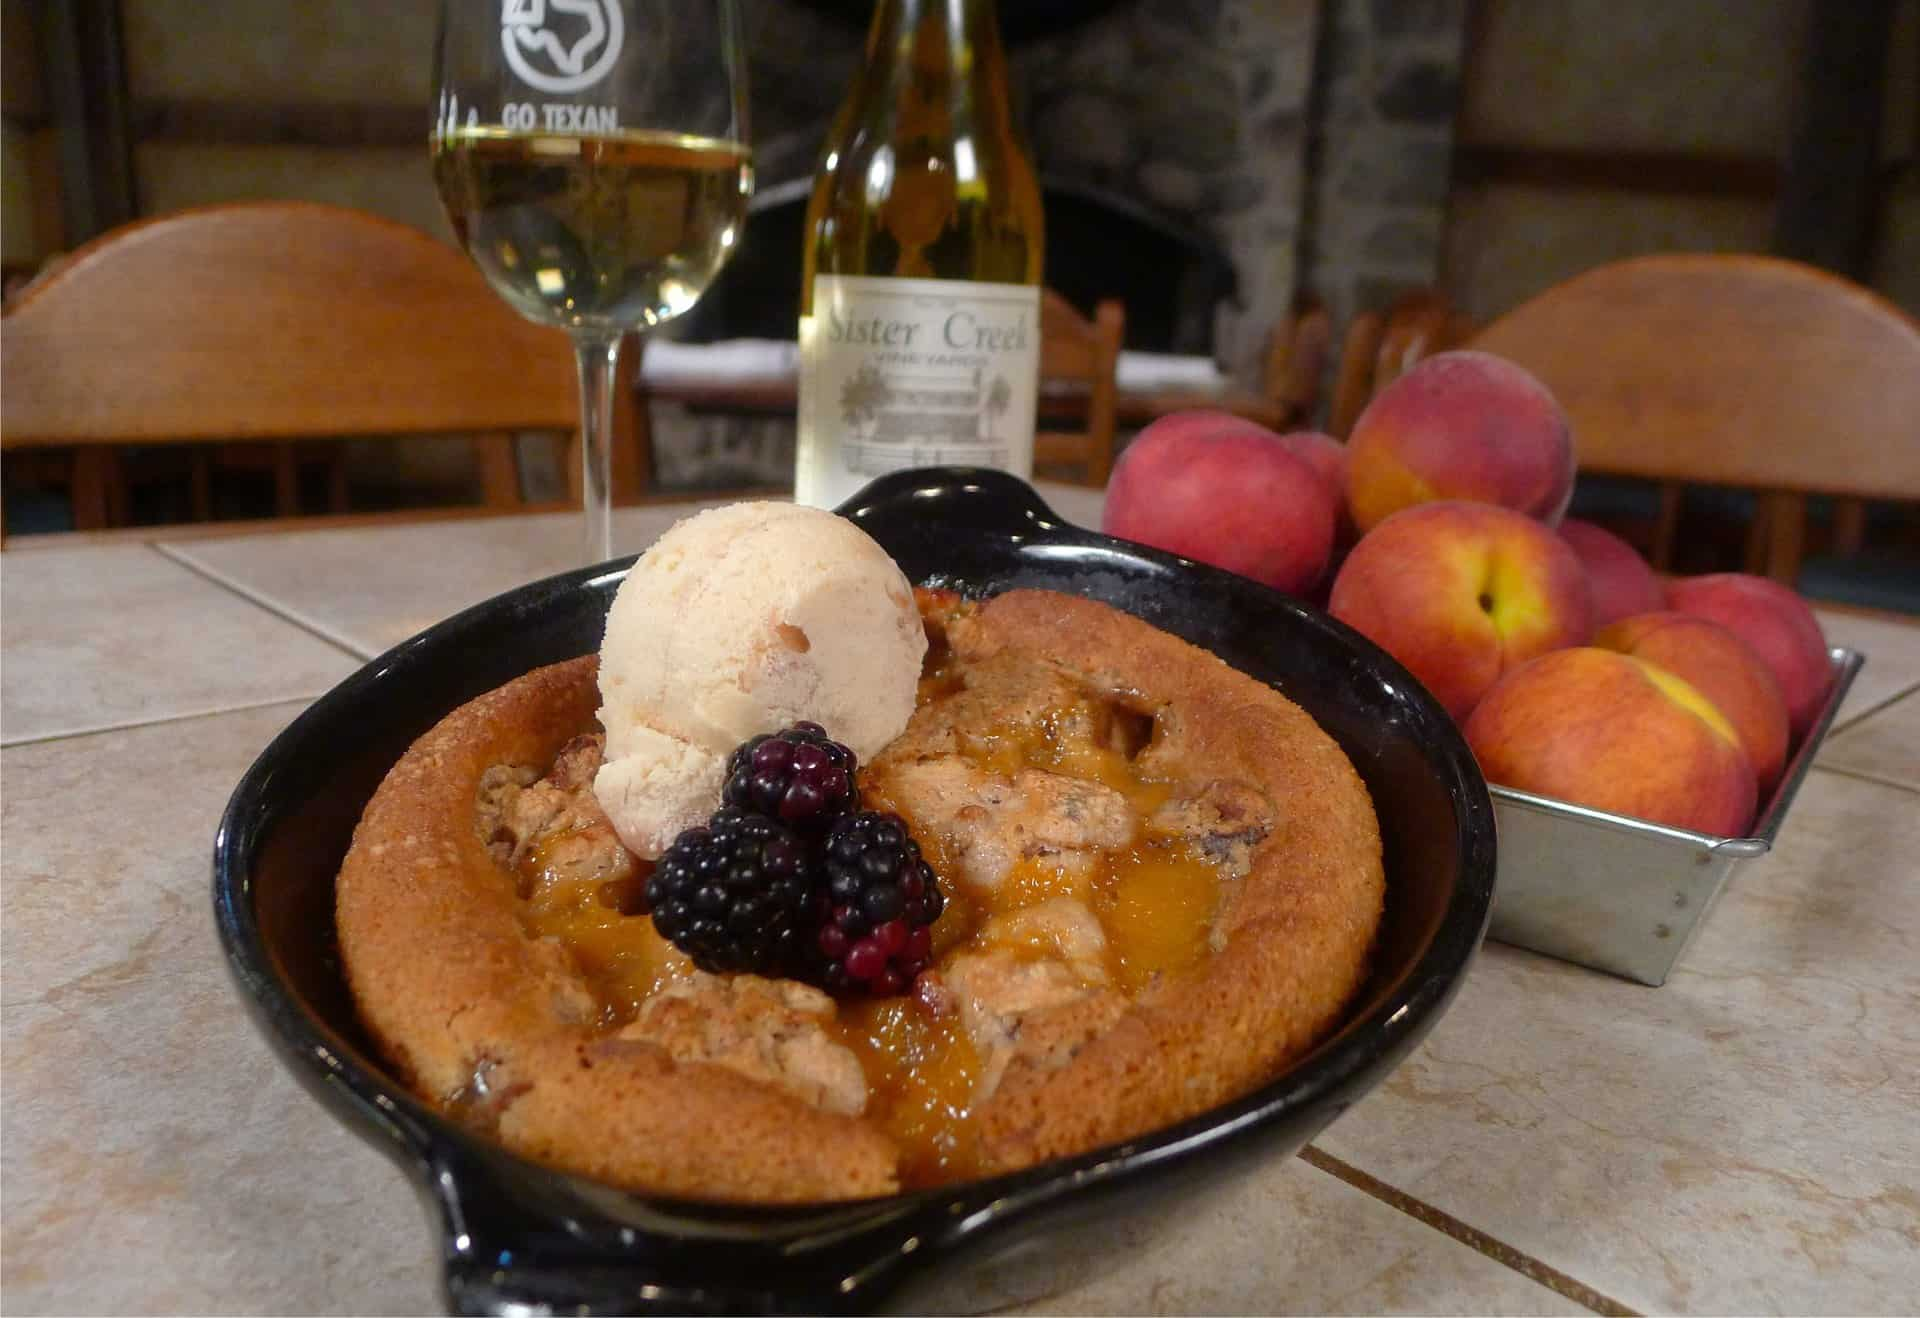 Cabernet Grill Pecan Peach Cobbler